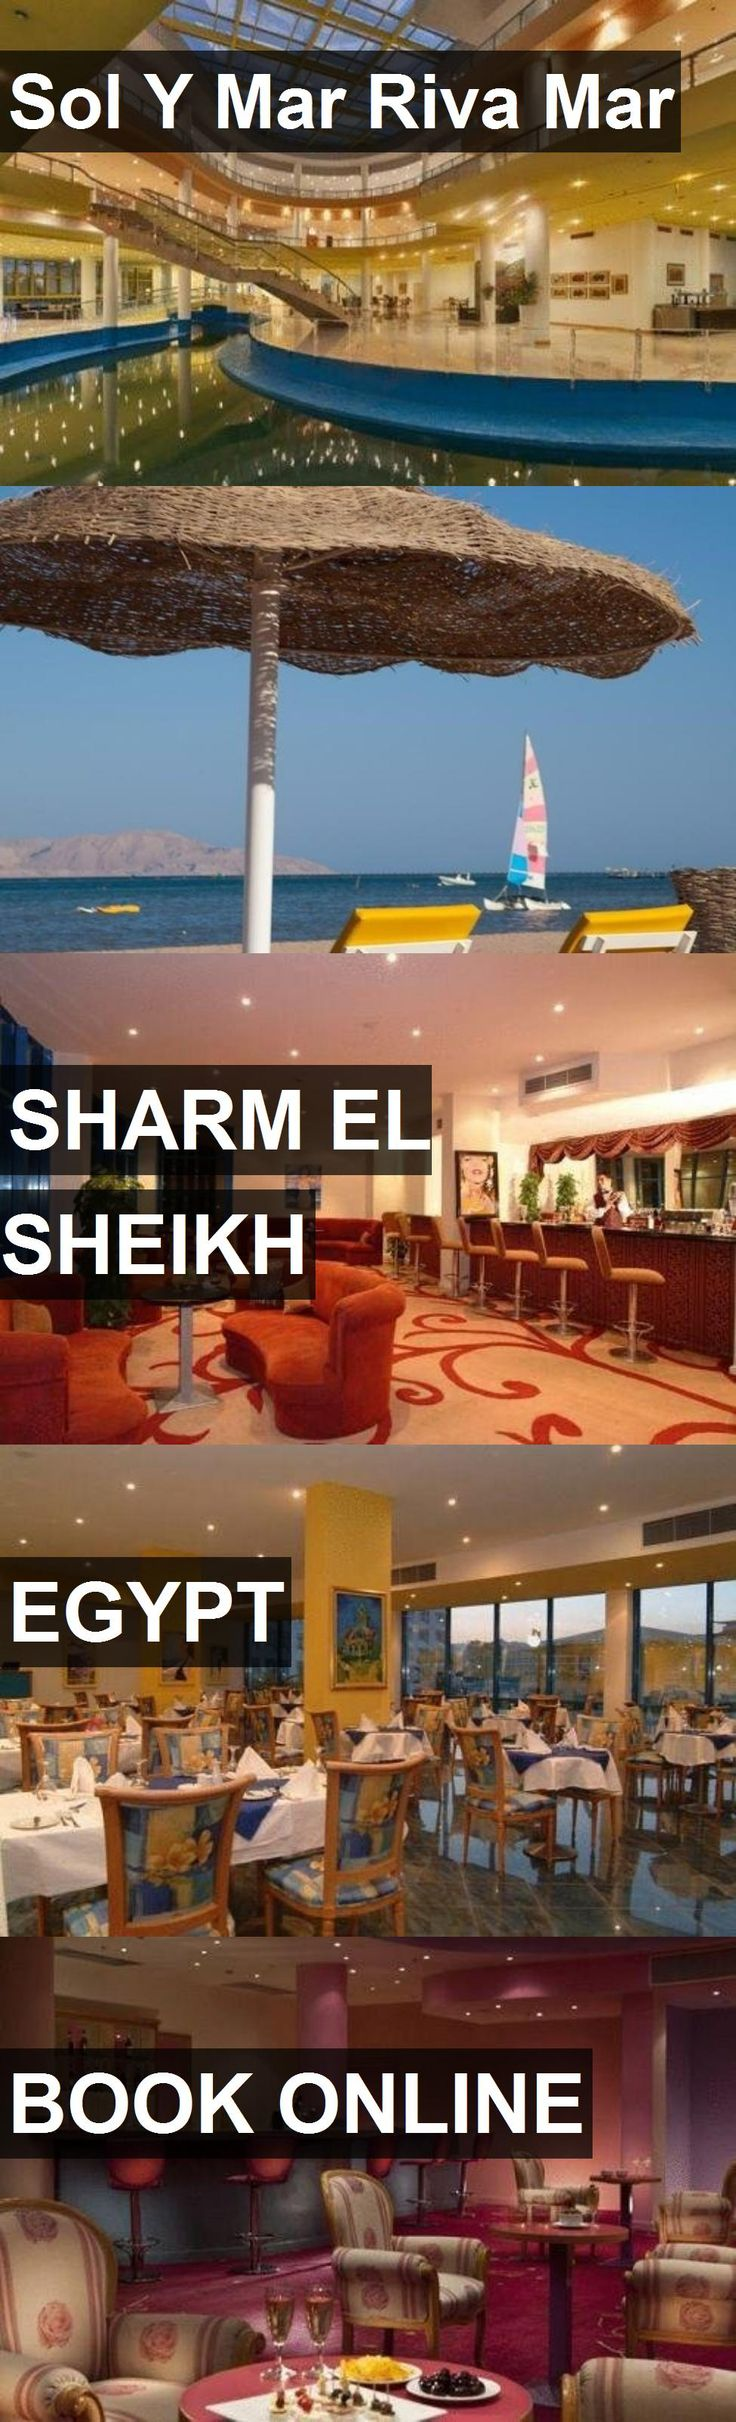 Hotel Sol Y Mar Riva Mar in Sharm el Sheikh, Egypt. For more information, photos, reviews and best prices please follow the link. #Egypt #SharmelSheikh #travel #vacation #hotel